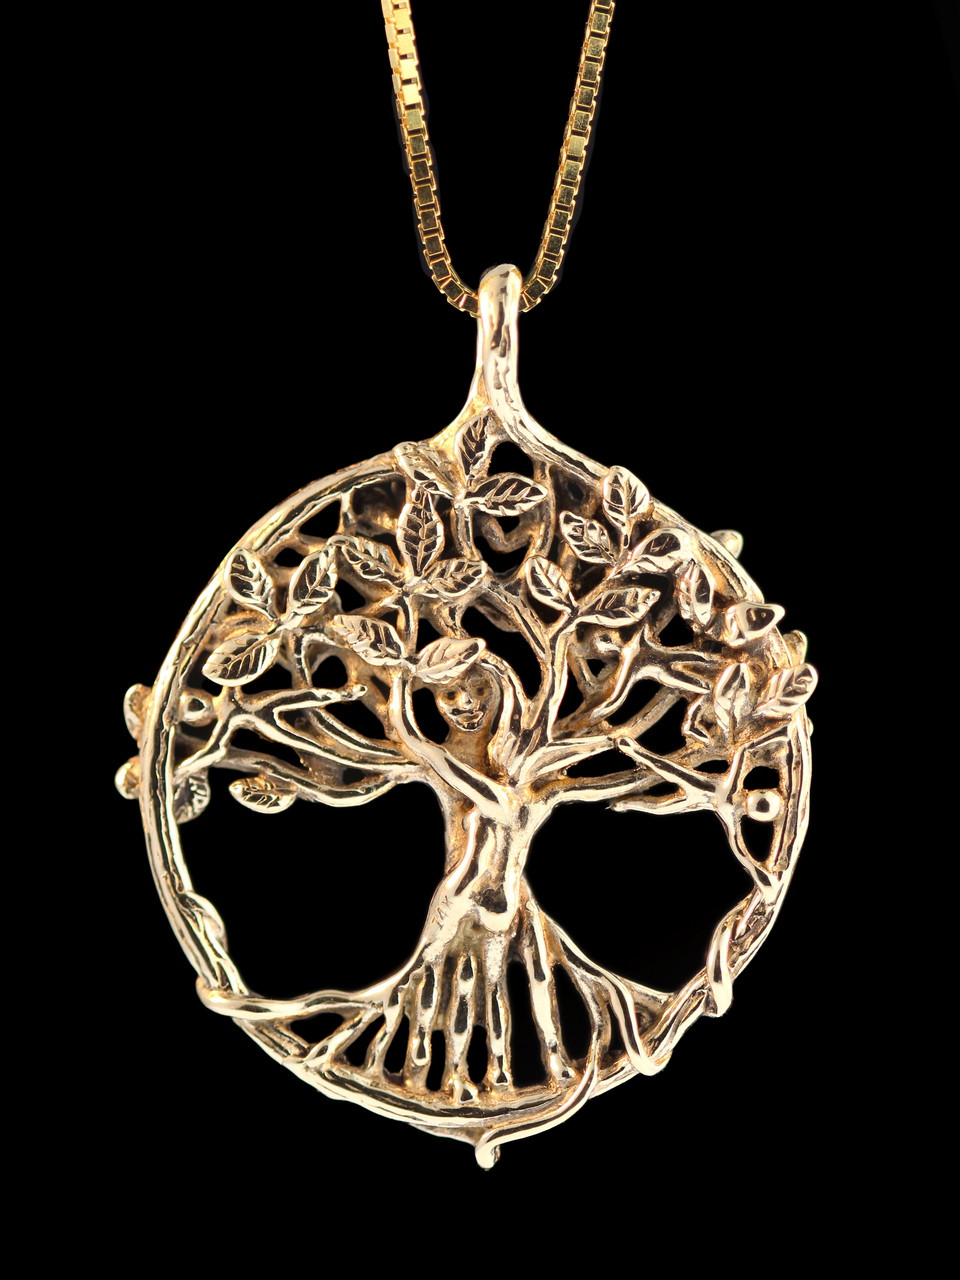 life silver rose of necklace shop tree biba pendant